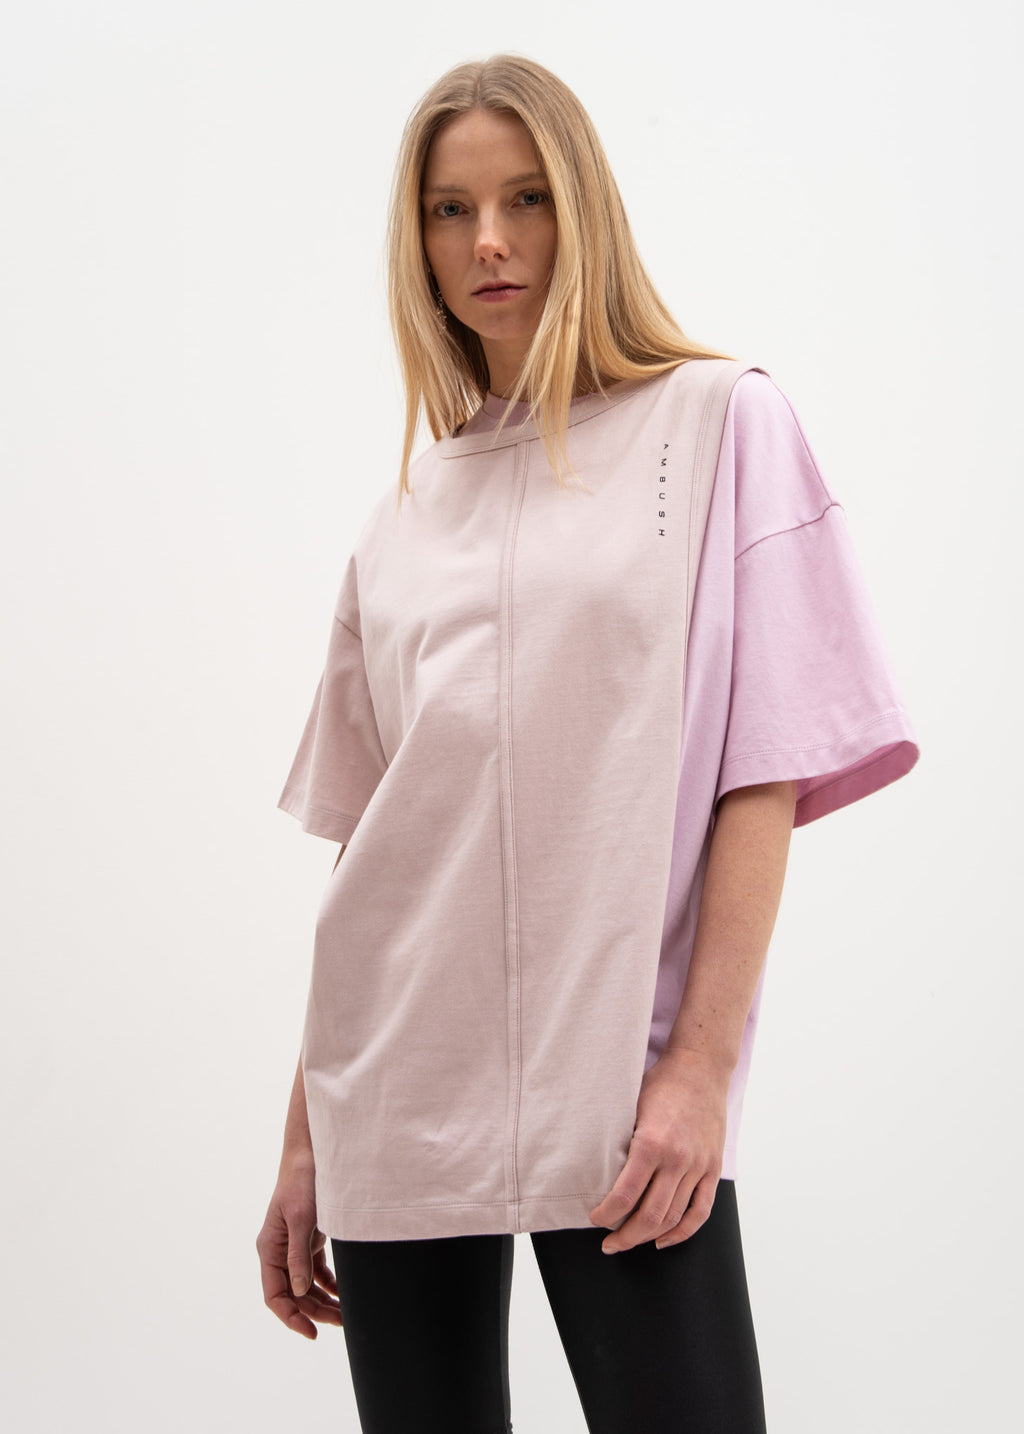 Ambush, Pink Layered T-Shirt, 017 Shop